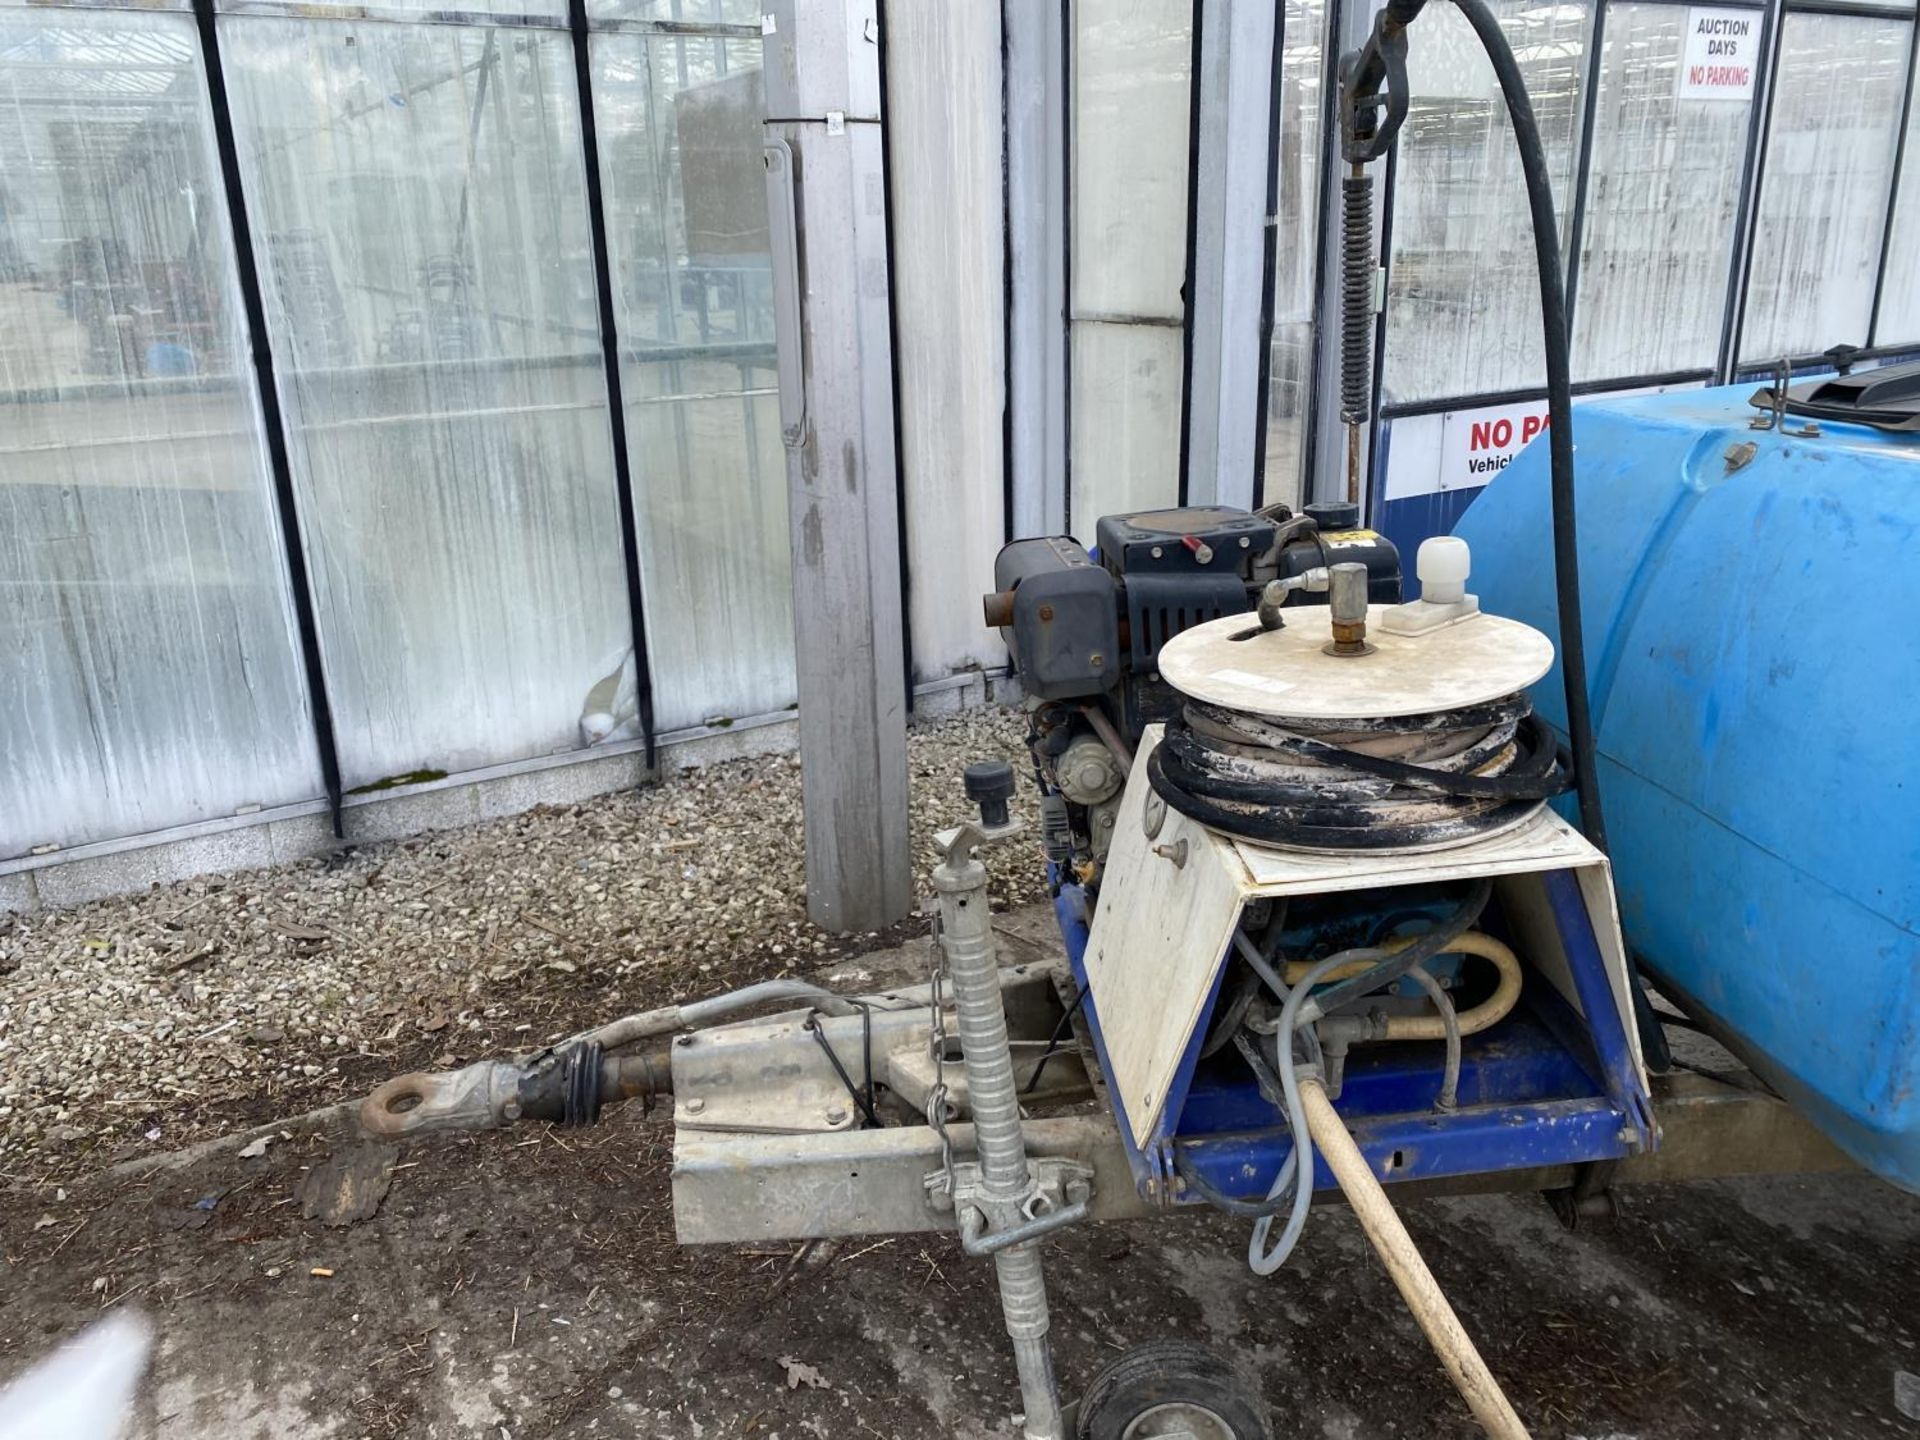 A MOBILE JET WASHER WITH DIESEL ENGINE BELIEVED WORKING NO WARRANTY - NO VAT - Image 2 of 5